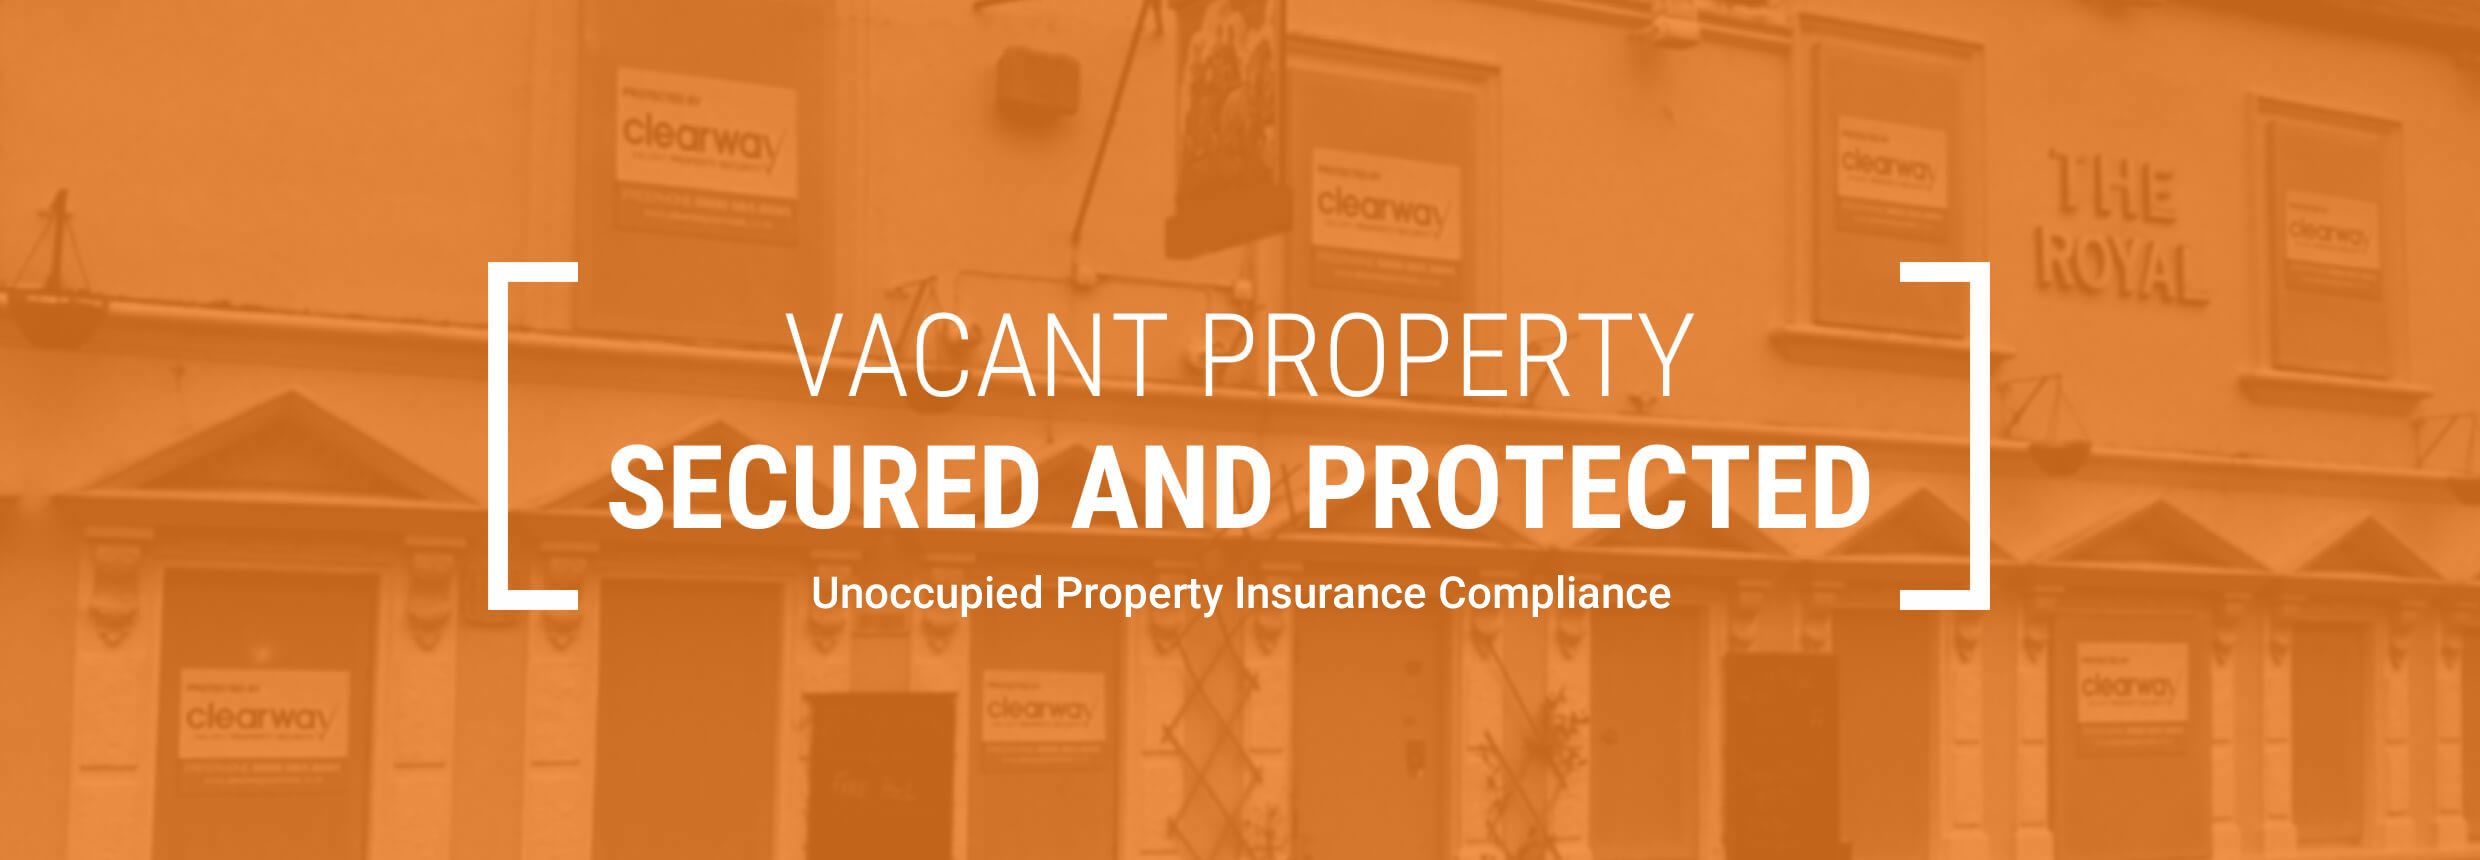 Unoccupied Property Insurance Compliance